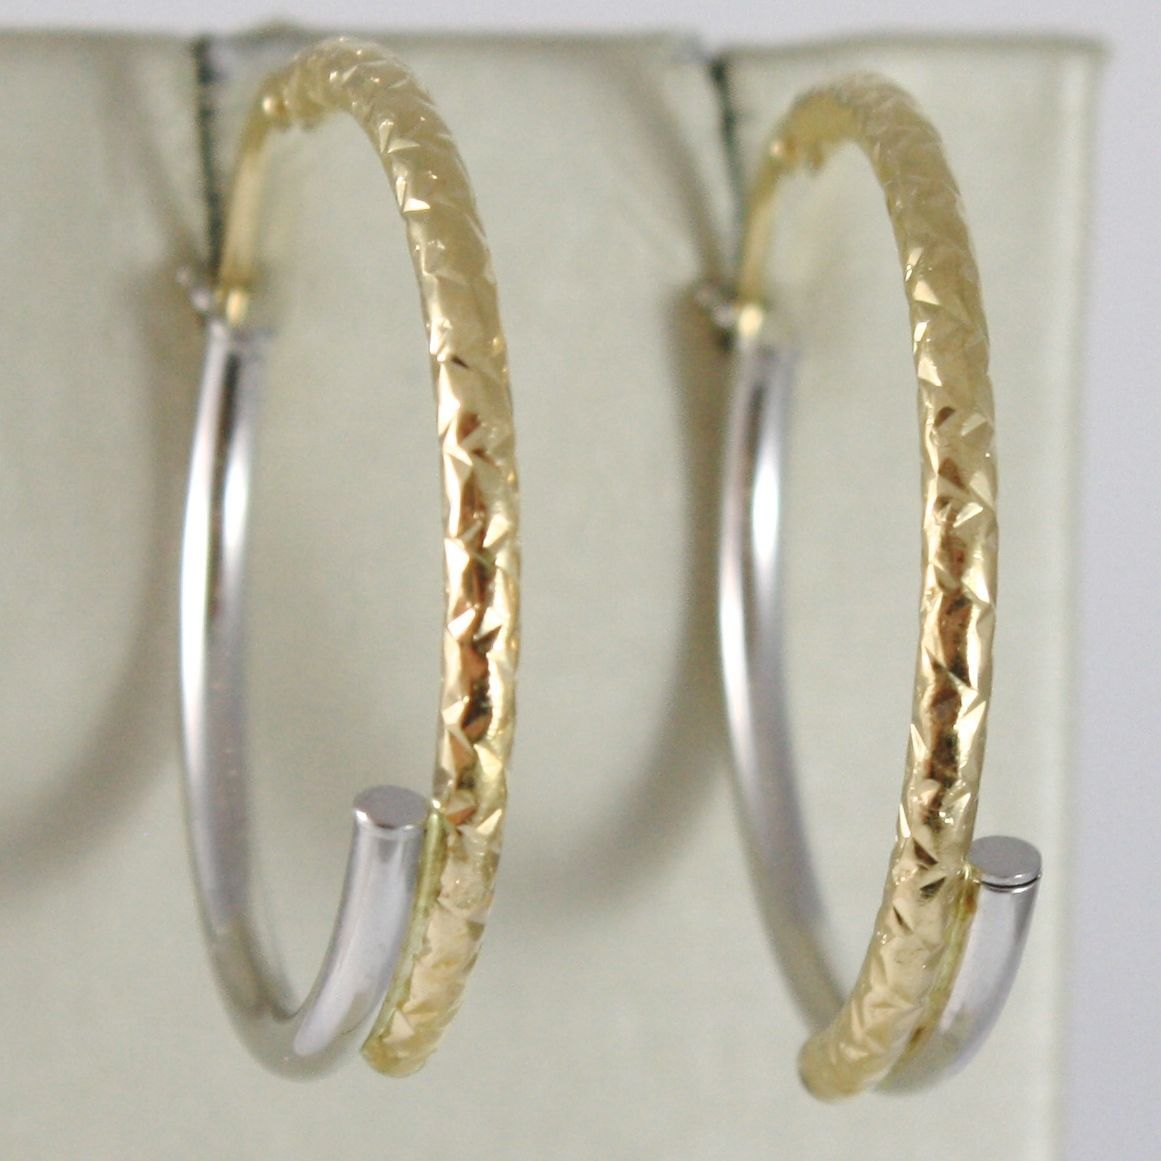 WHITE GOLD EARRINGS YELLOW 750 18K CIRCLE, SMOOTH AND HAMMERED, TUBE, ITALY